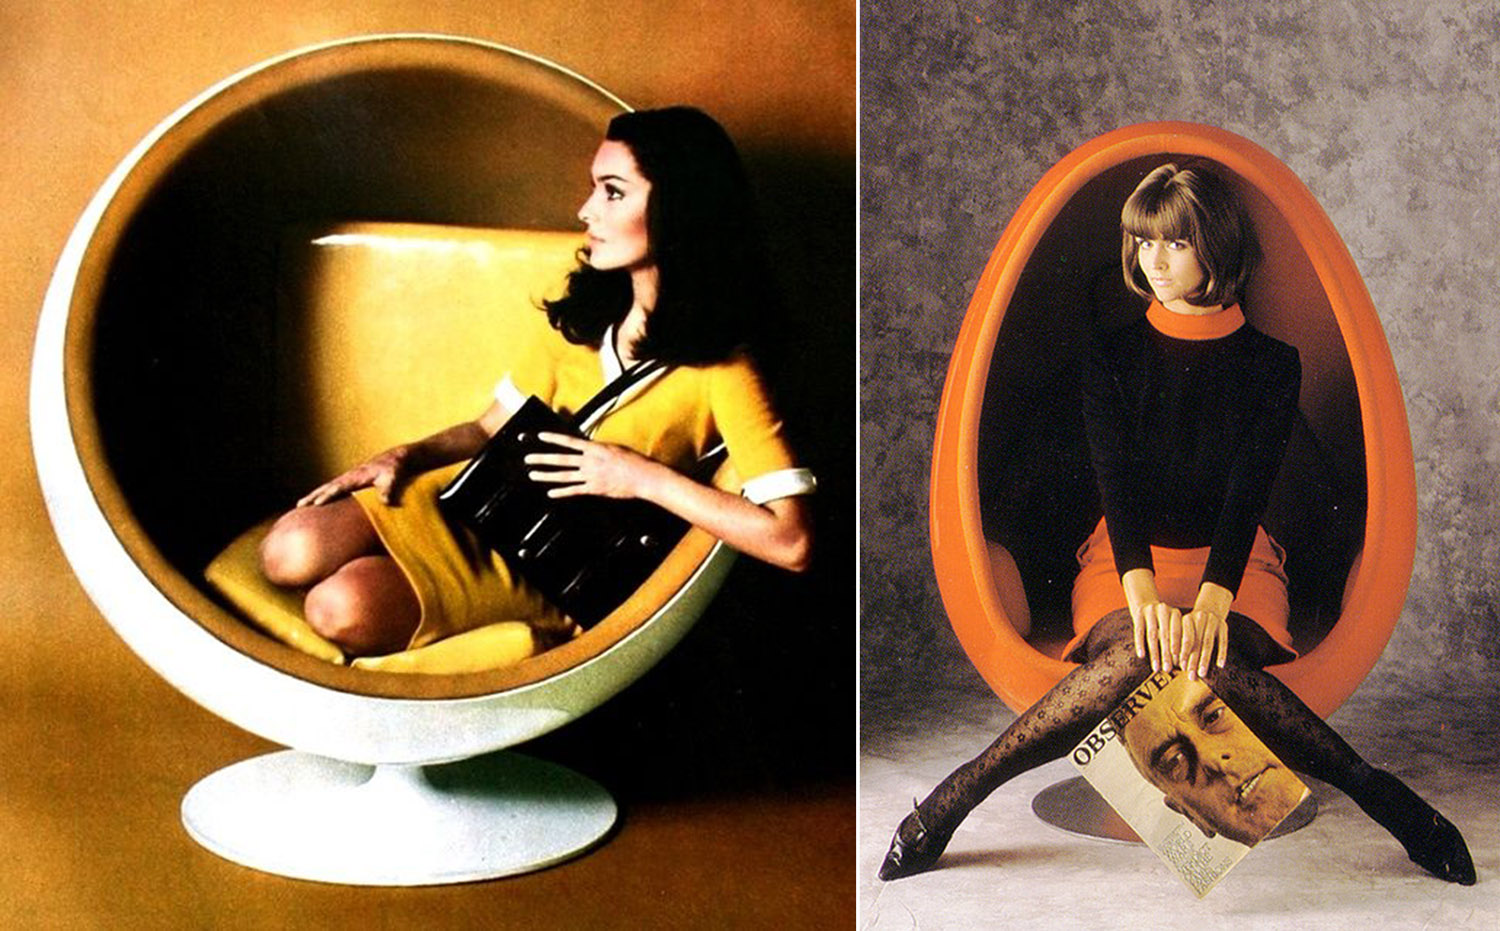 Men In Black Egg Chair The Amazing Ball And Egg Chairs Of The 1960s 1970s Flashbak